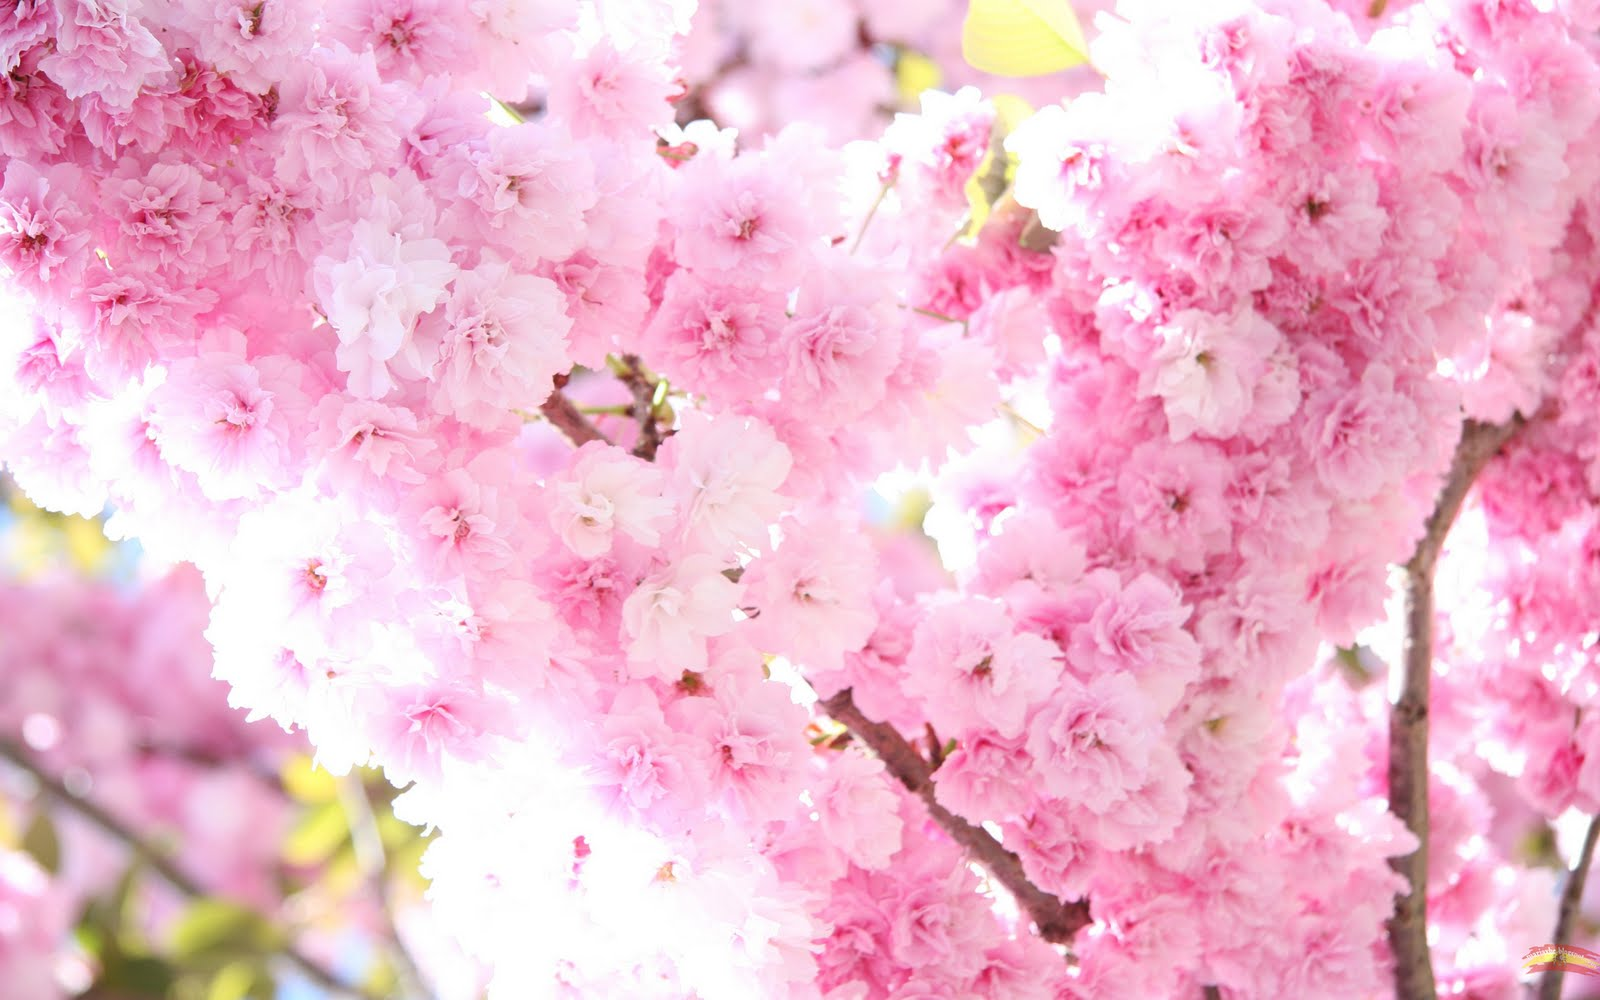 Pink Blossom Wallpaper - Pink Blossom Wallpaper